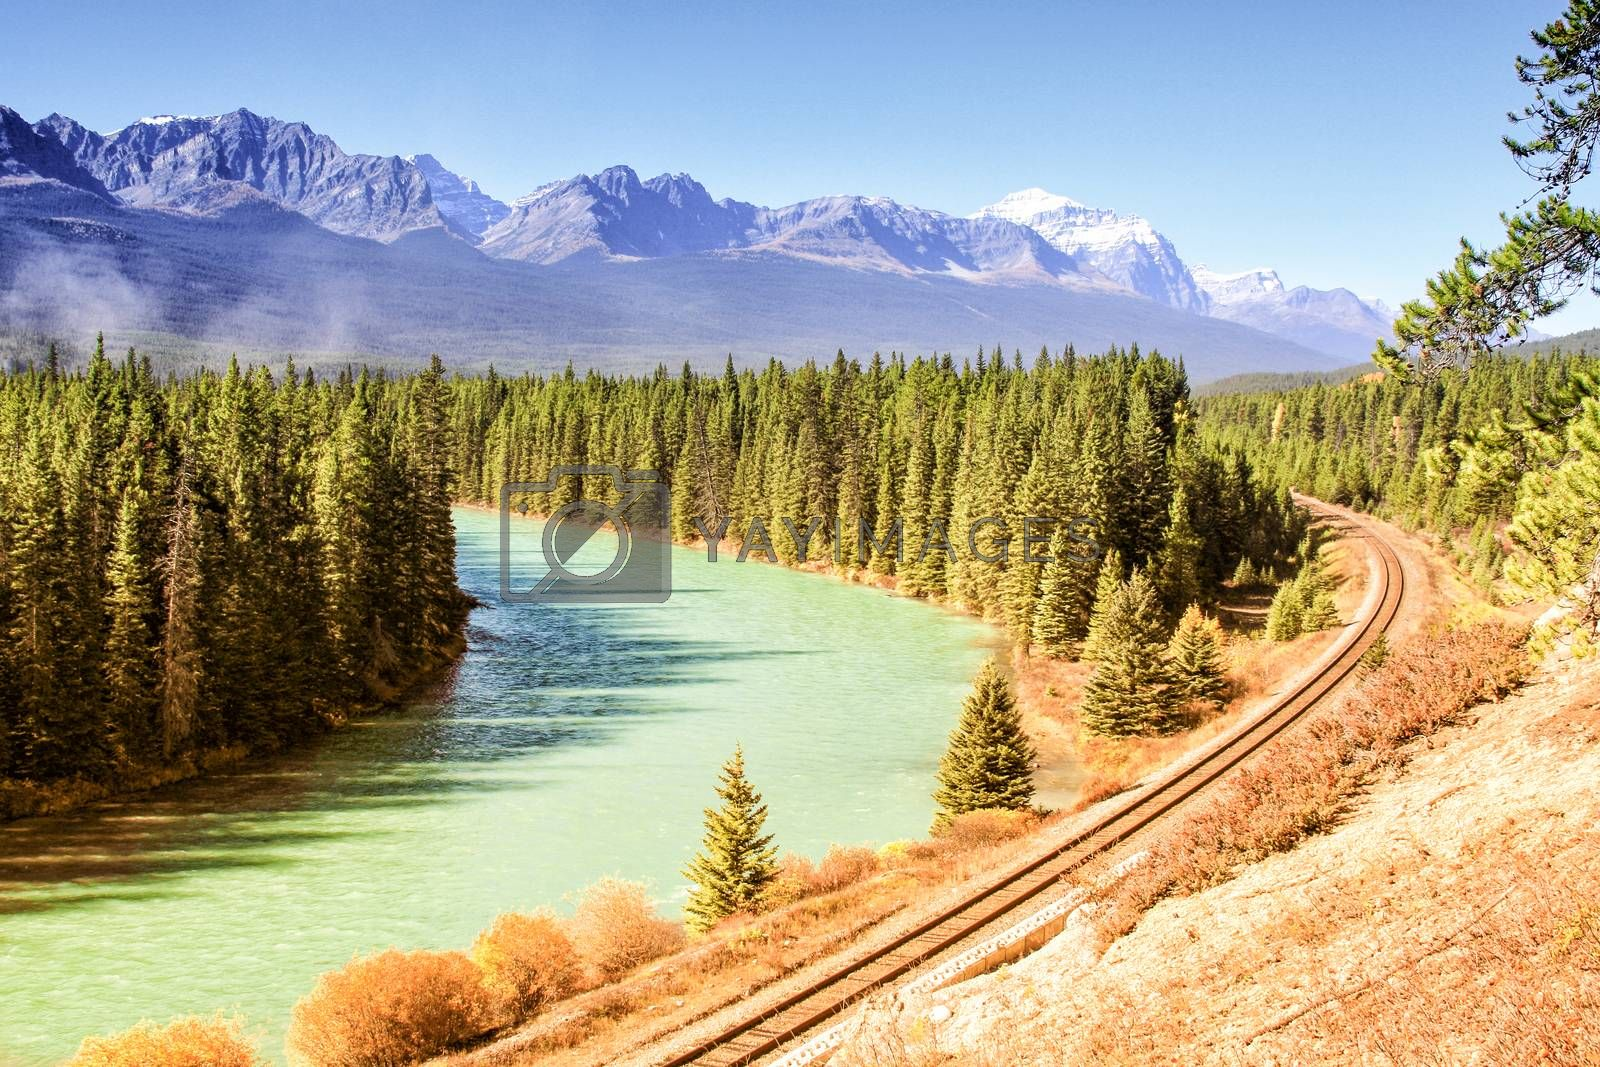 Royalty free image of River and railroad by betweenthecircles